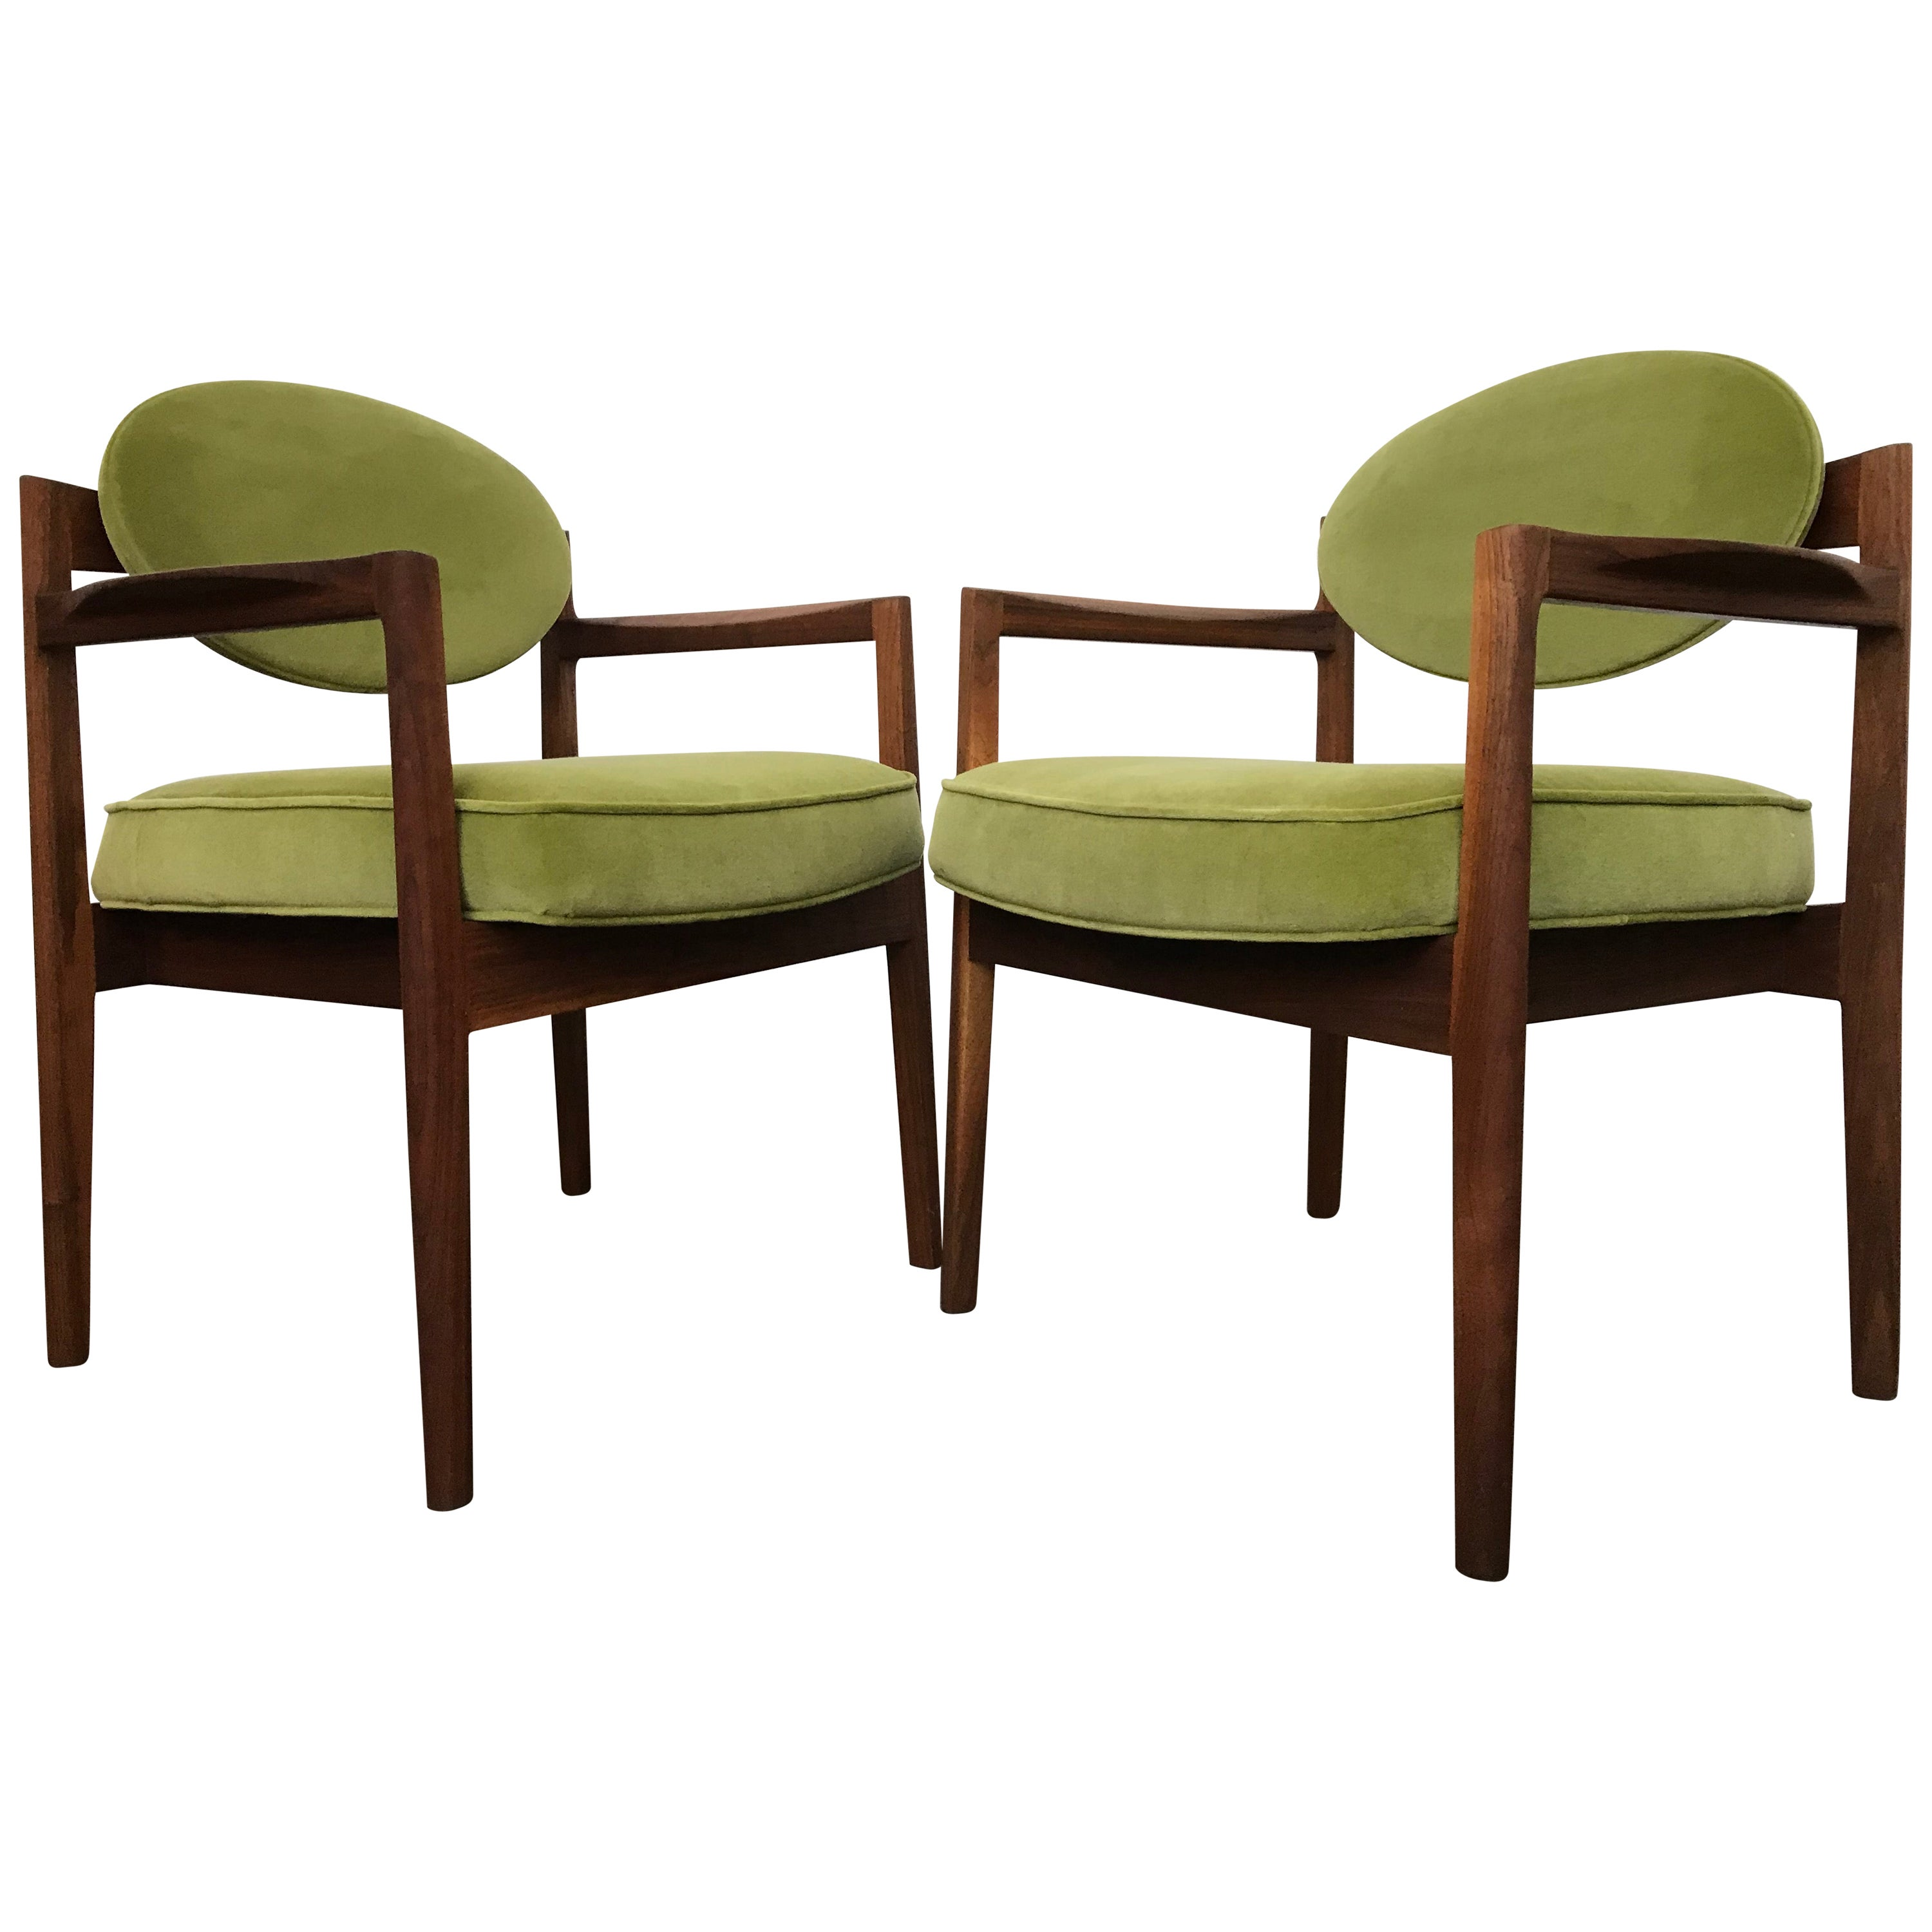 Mid Century Modern Armchairs 'Oval-Back' by Jens Risom